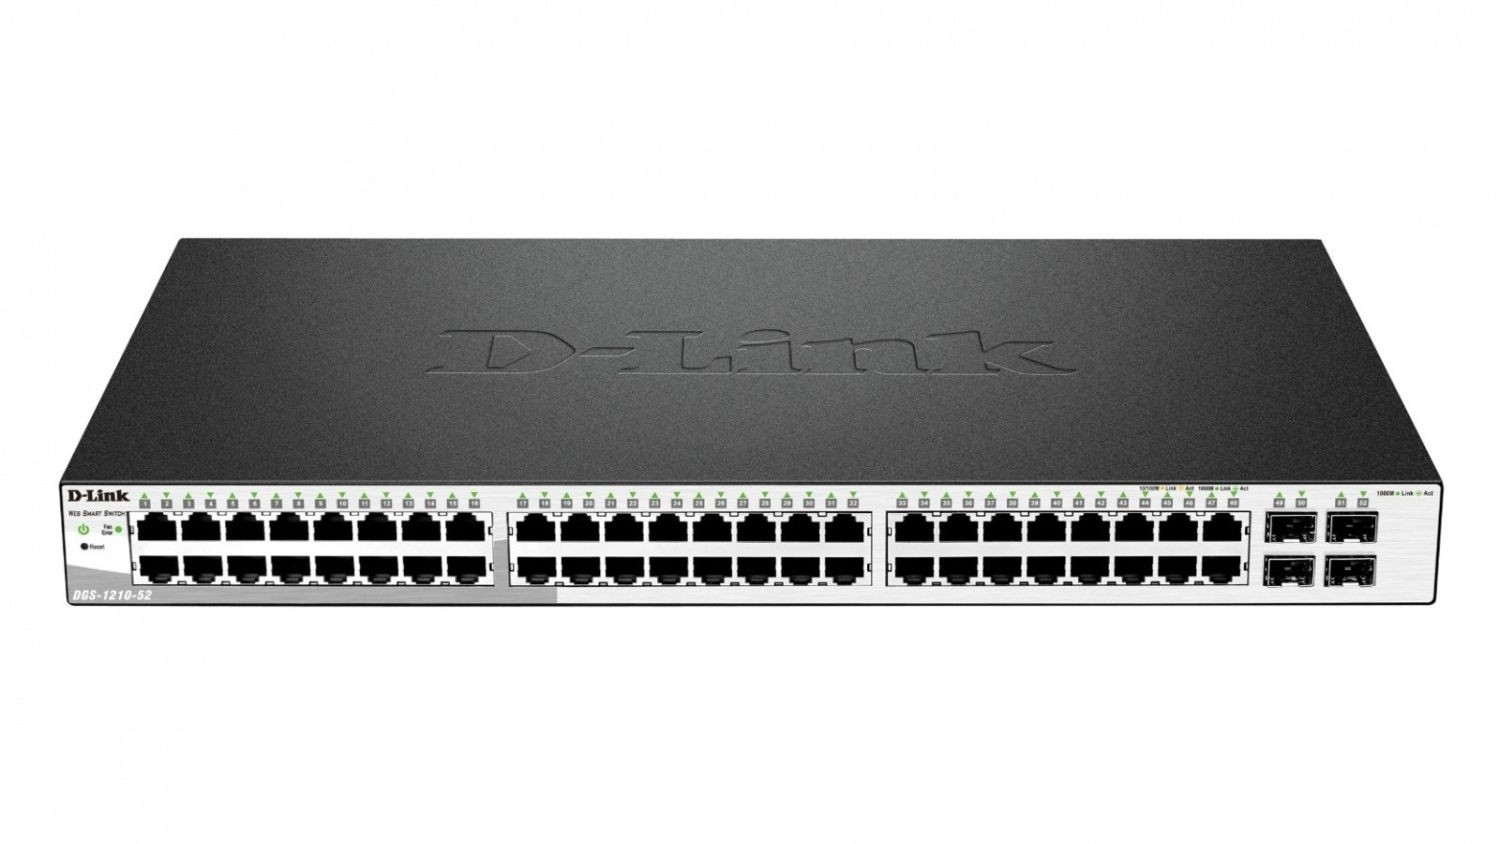 D-Link 52-port 10/100/1000 Gigabit Smart Switch including 4 Combo 1000BaseT/SFP